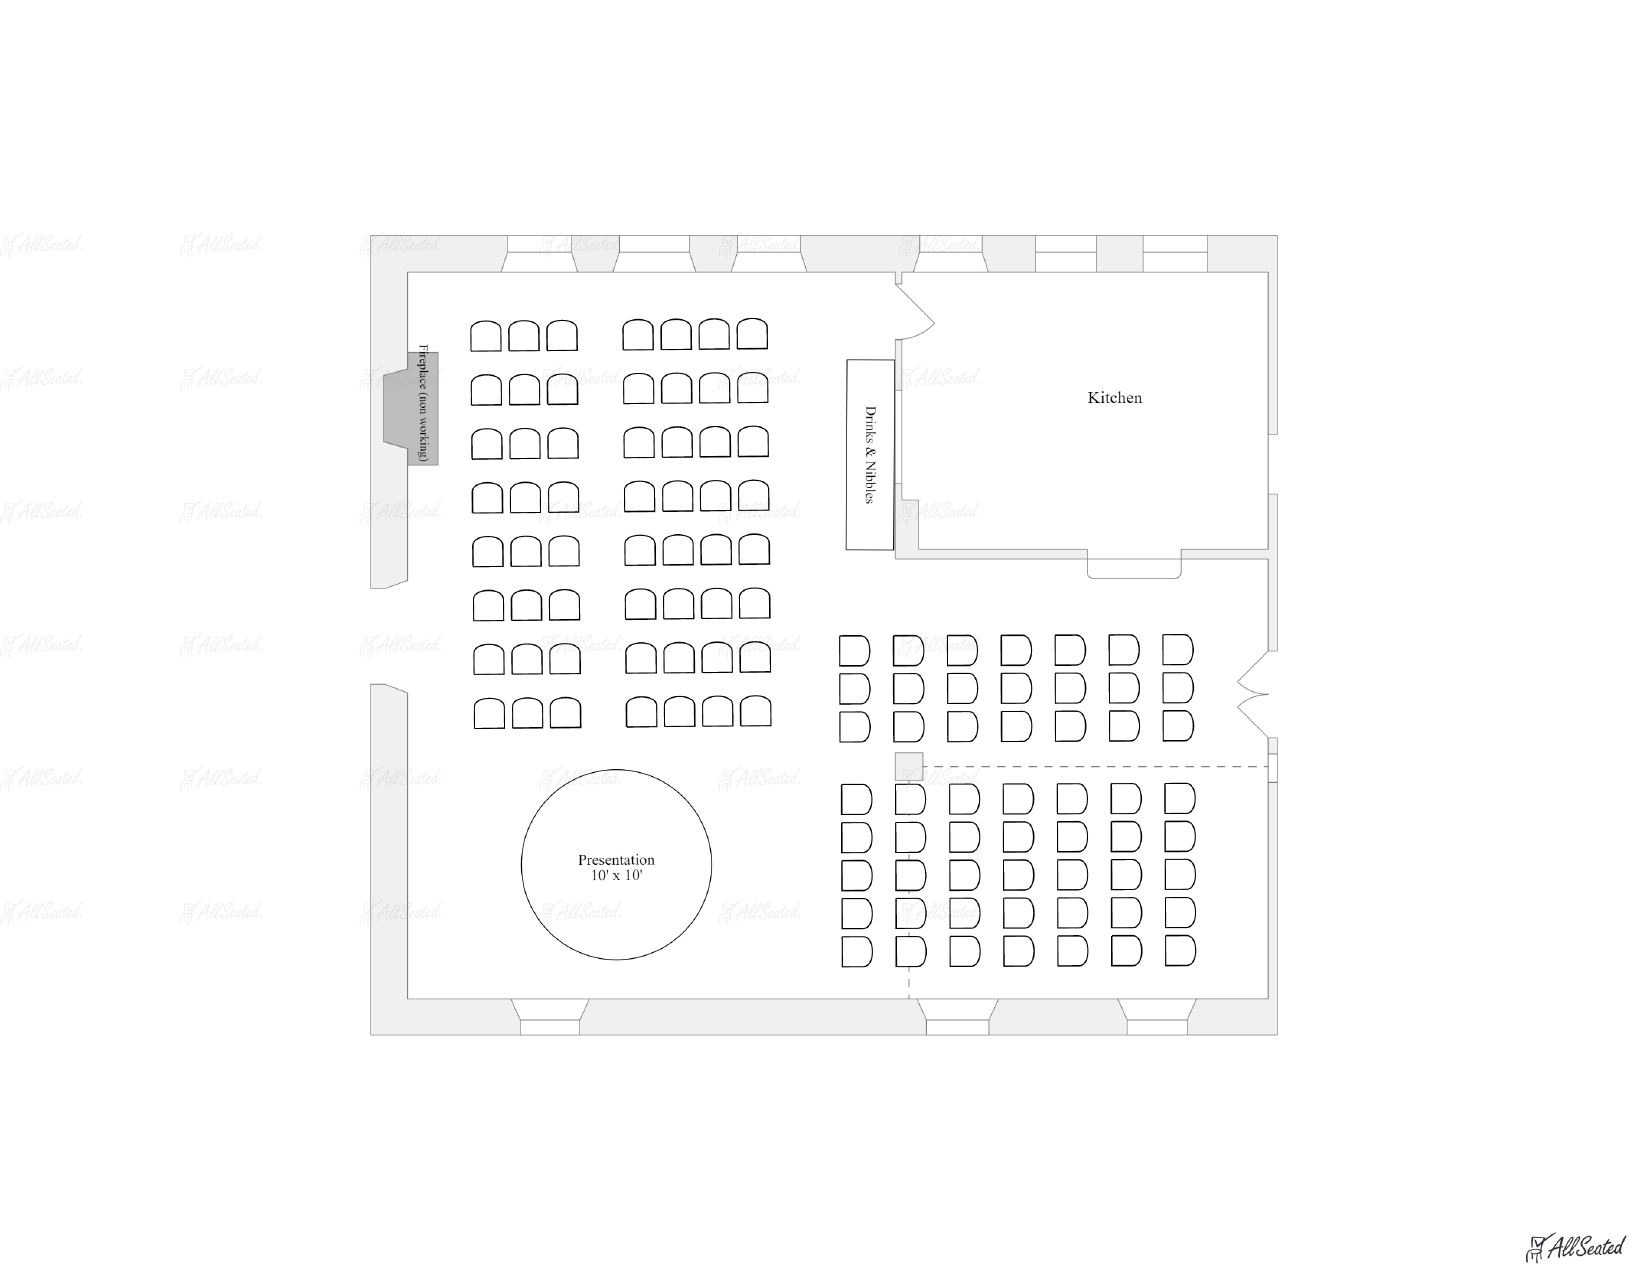 Corporate retreat or lecture seating for 112